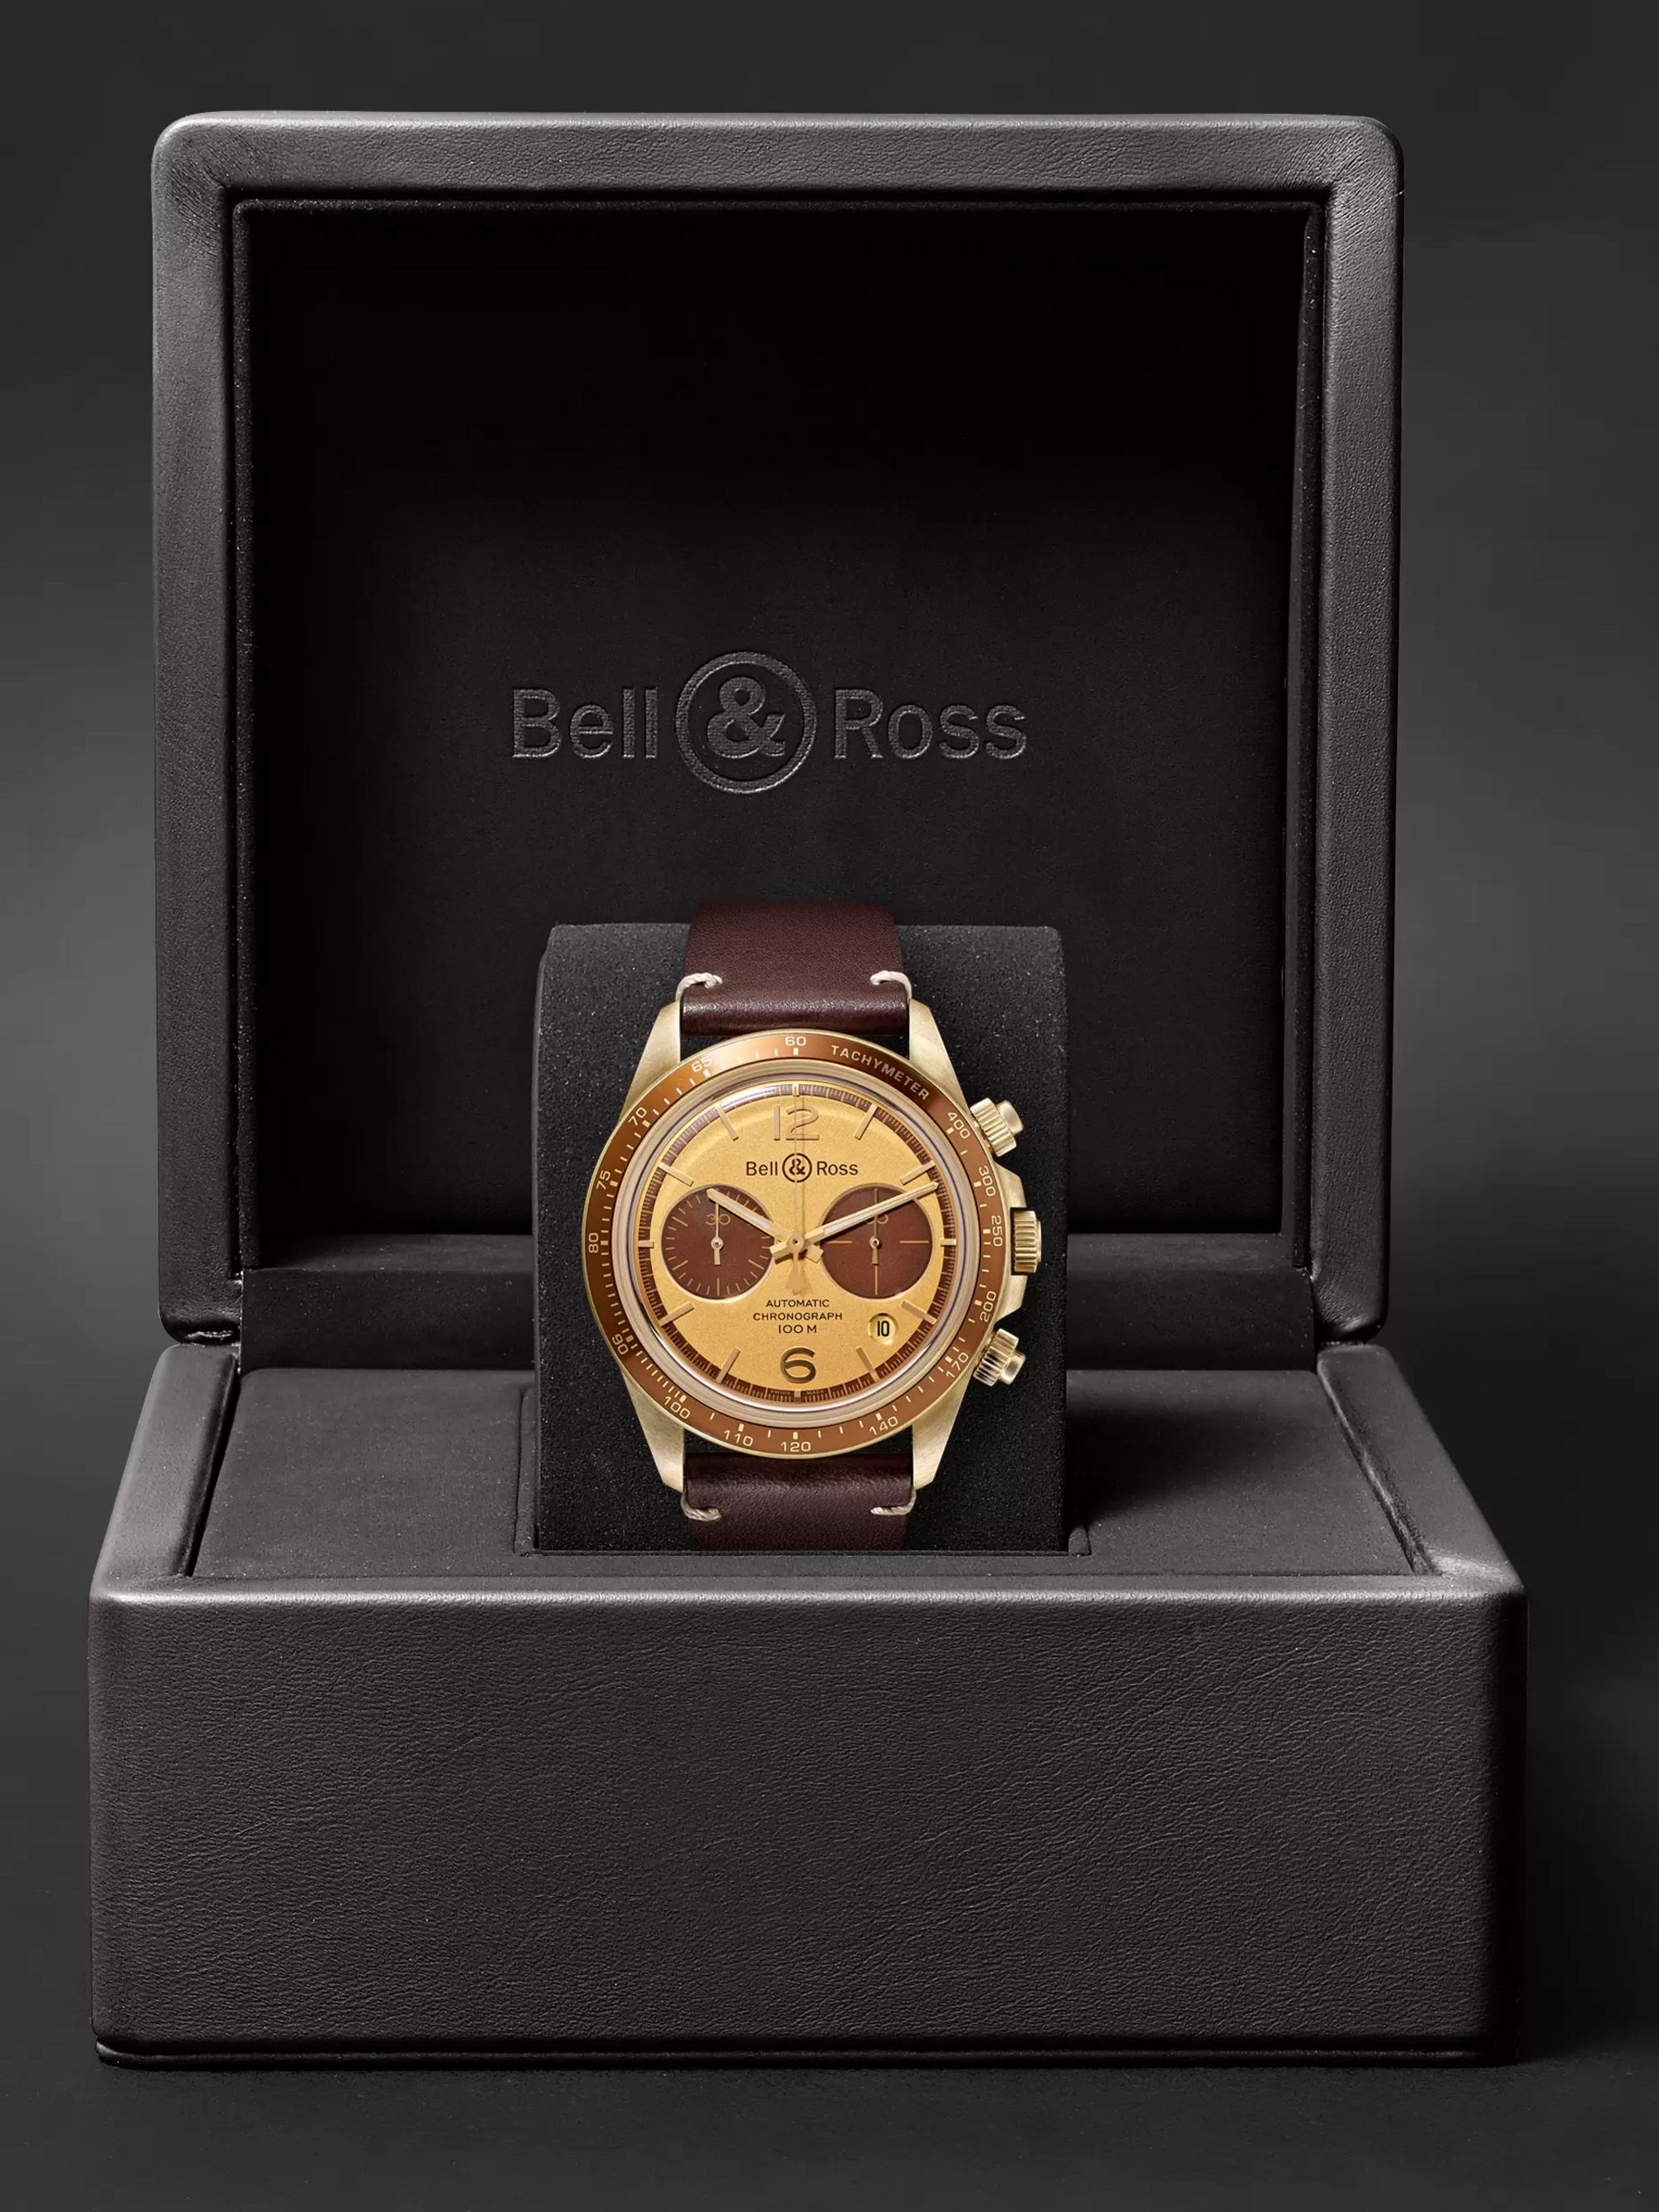 Bell & Ross + Revolution Bellytanker Chronograph 41mm Stainless Steel and Leather Watch, Ref. No. BRV294-RR-BR/SCA